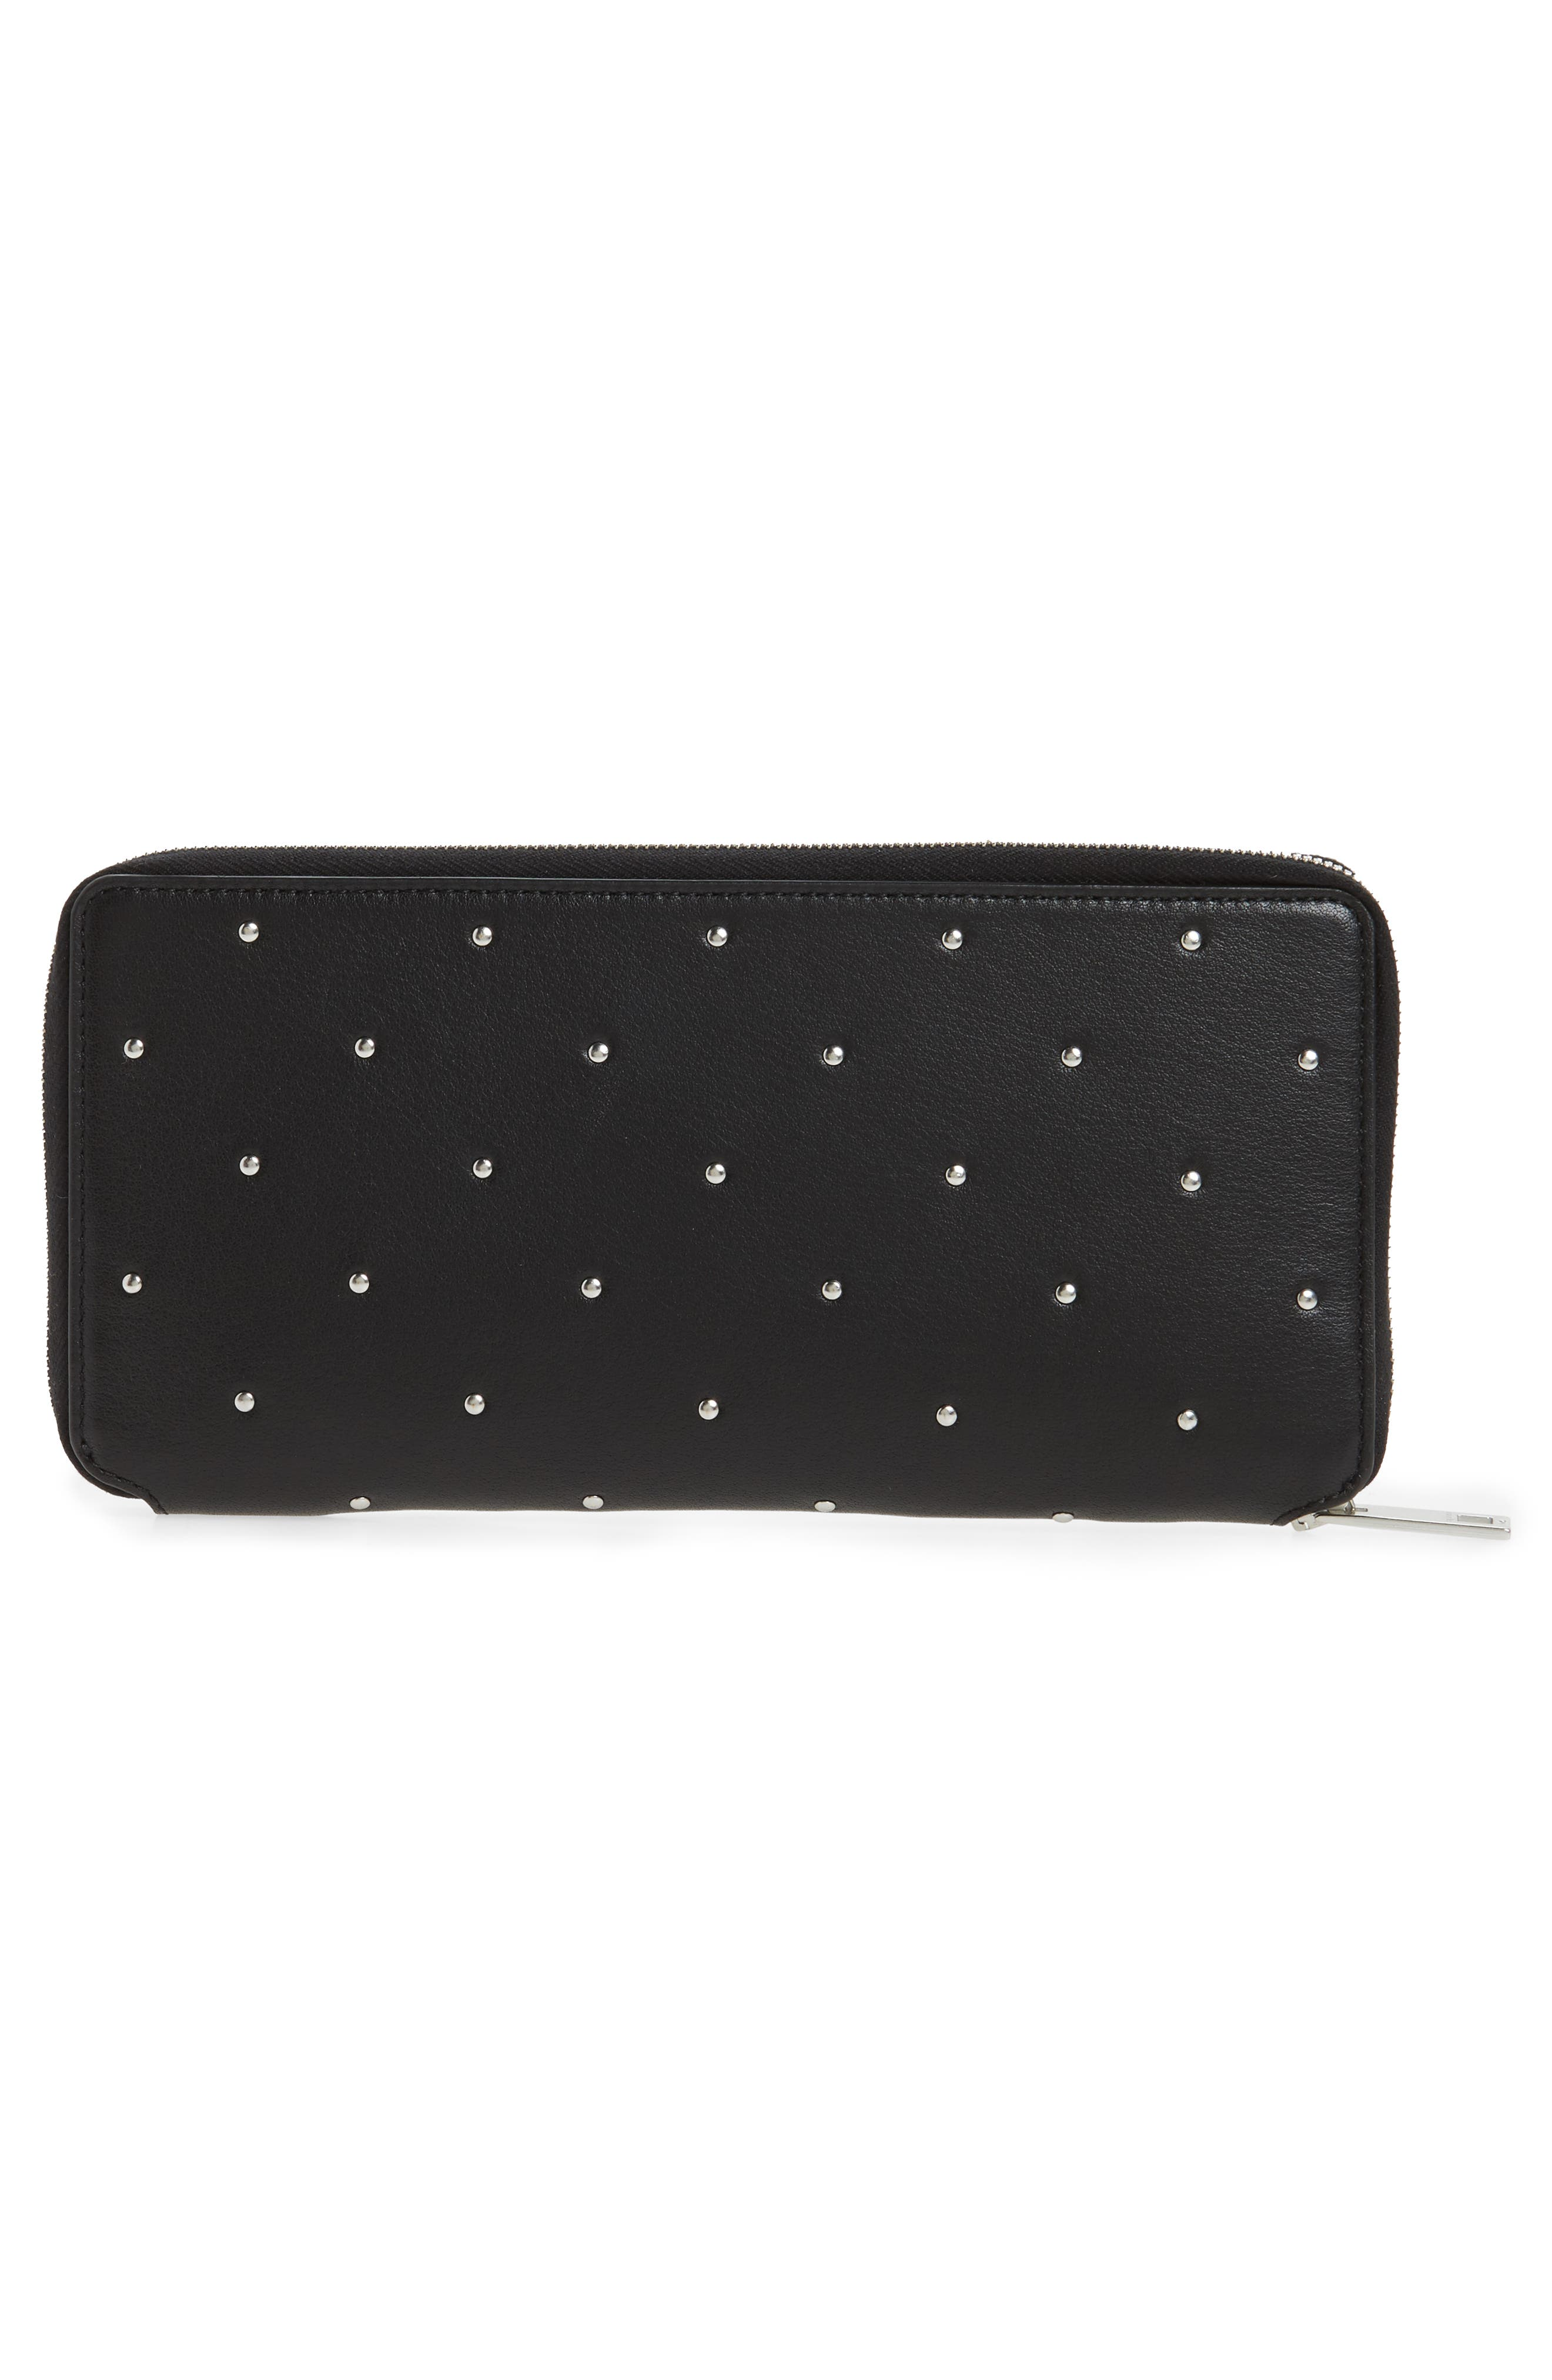 Studded Calfskin Leather Zip-Around Wallet,                             Alternate thumbnail 3, color,                             Black Studs